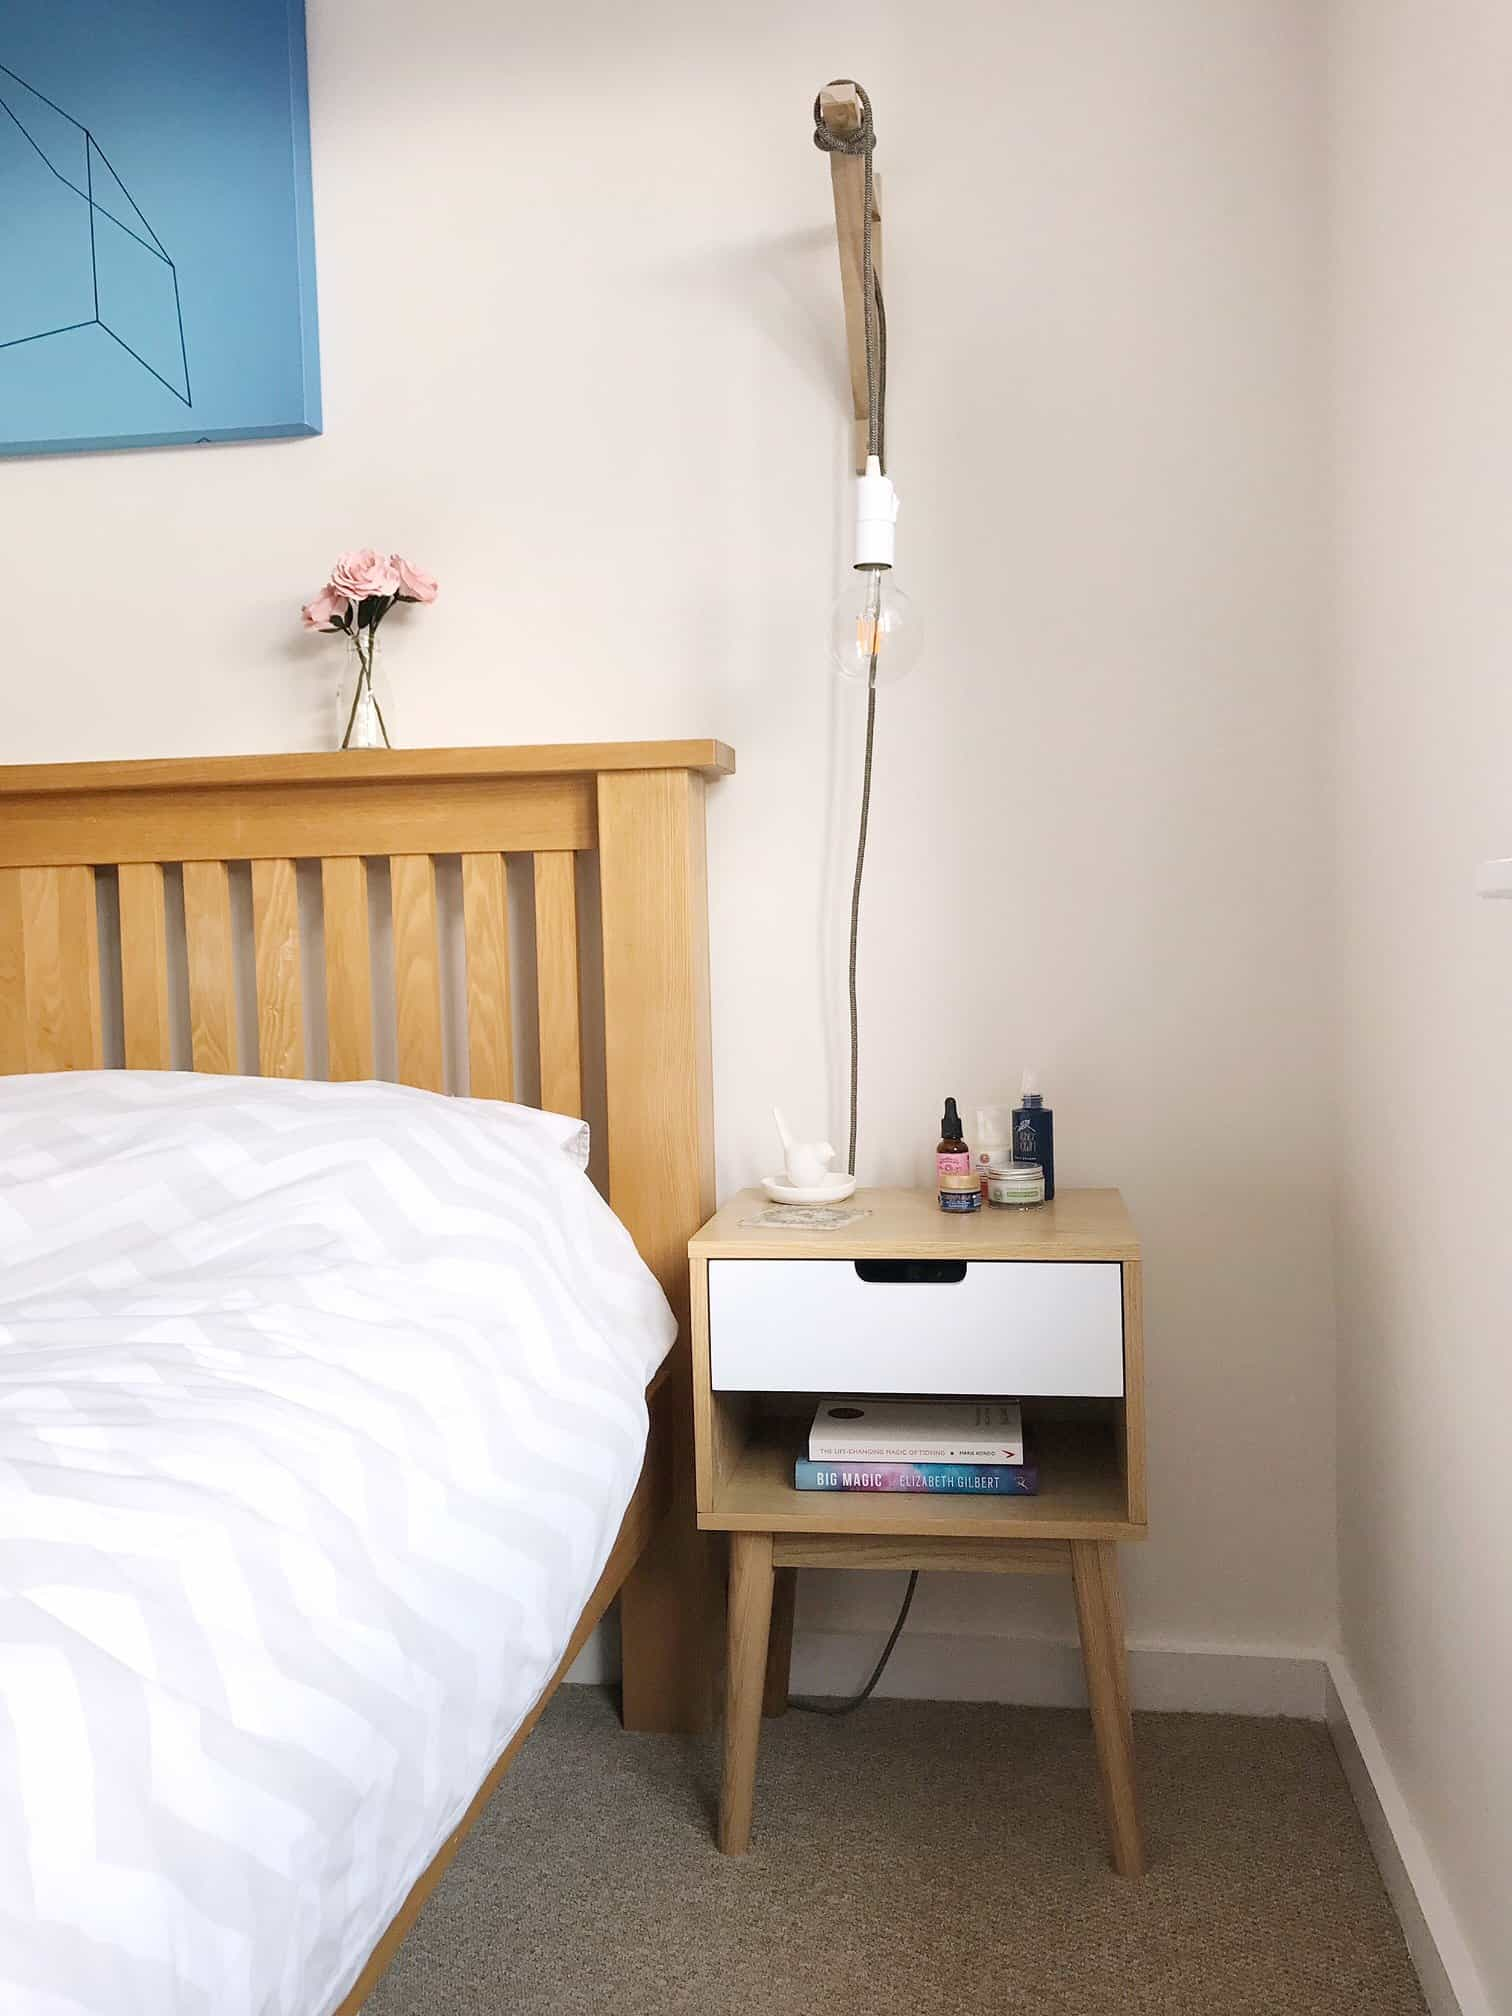 The bedside table and light are the only things we'd keep in our new dream bedroom